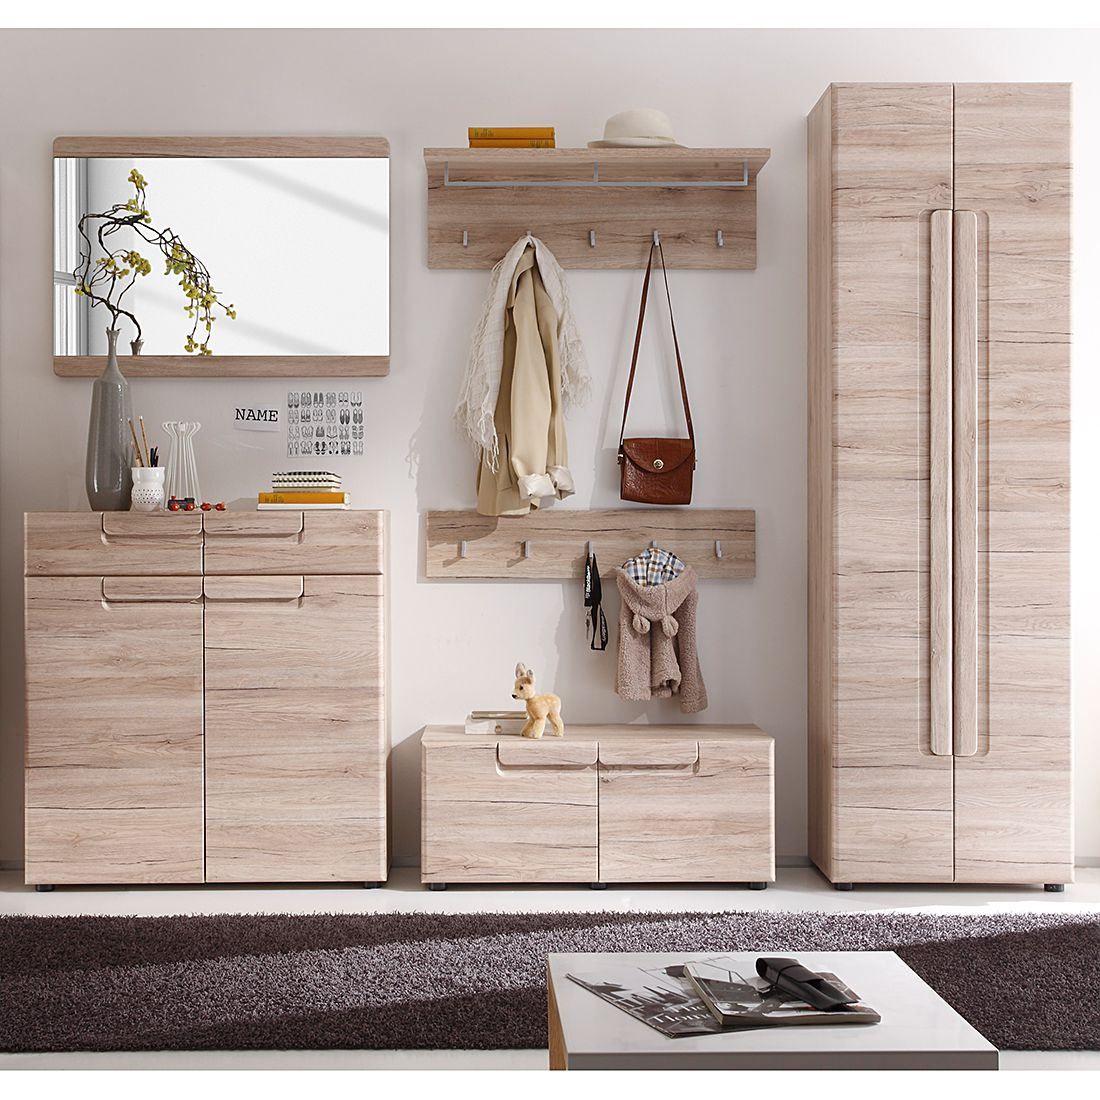 garderobenset giba 6 teilig eiche sanremo dekor modoform g nstig kaufen. Black Bedroom Furniture Sets. Home Design Ideas